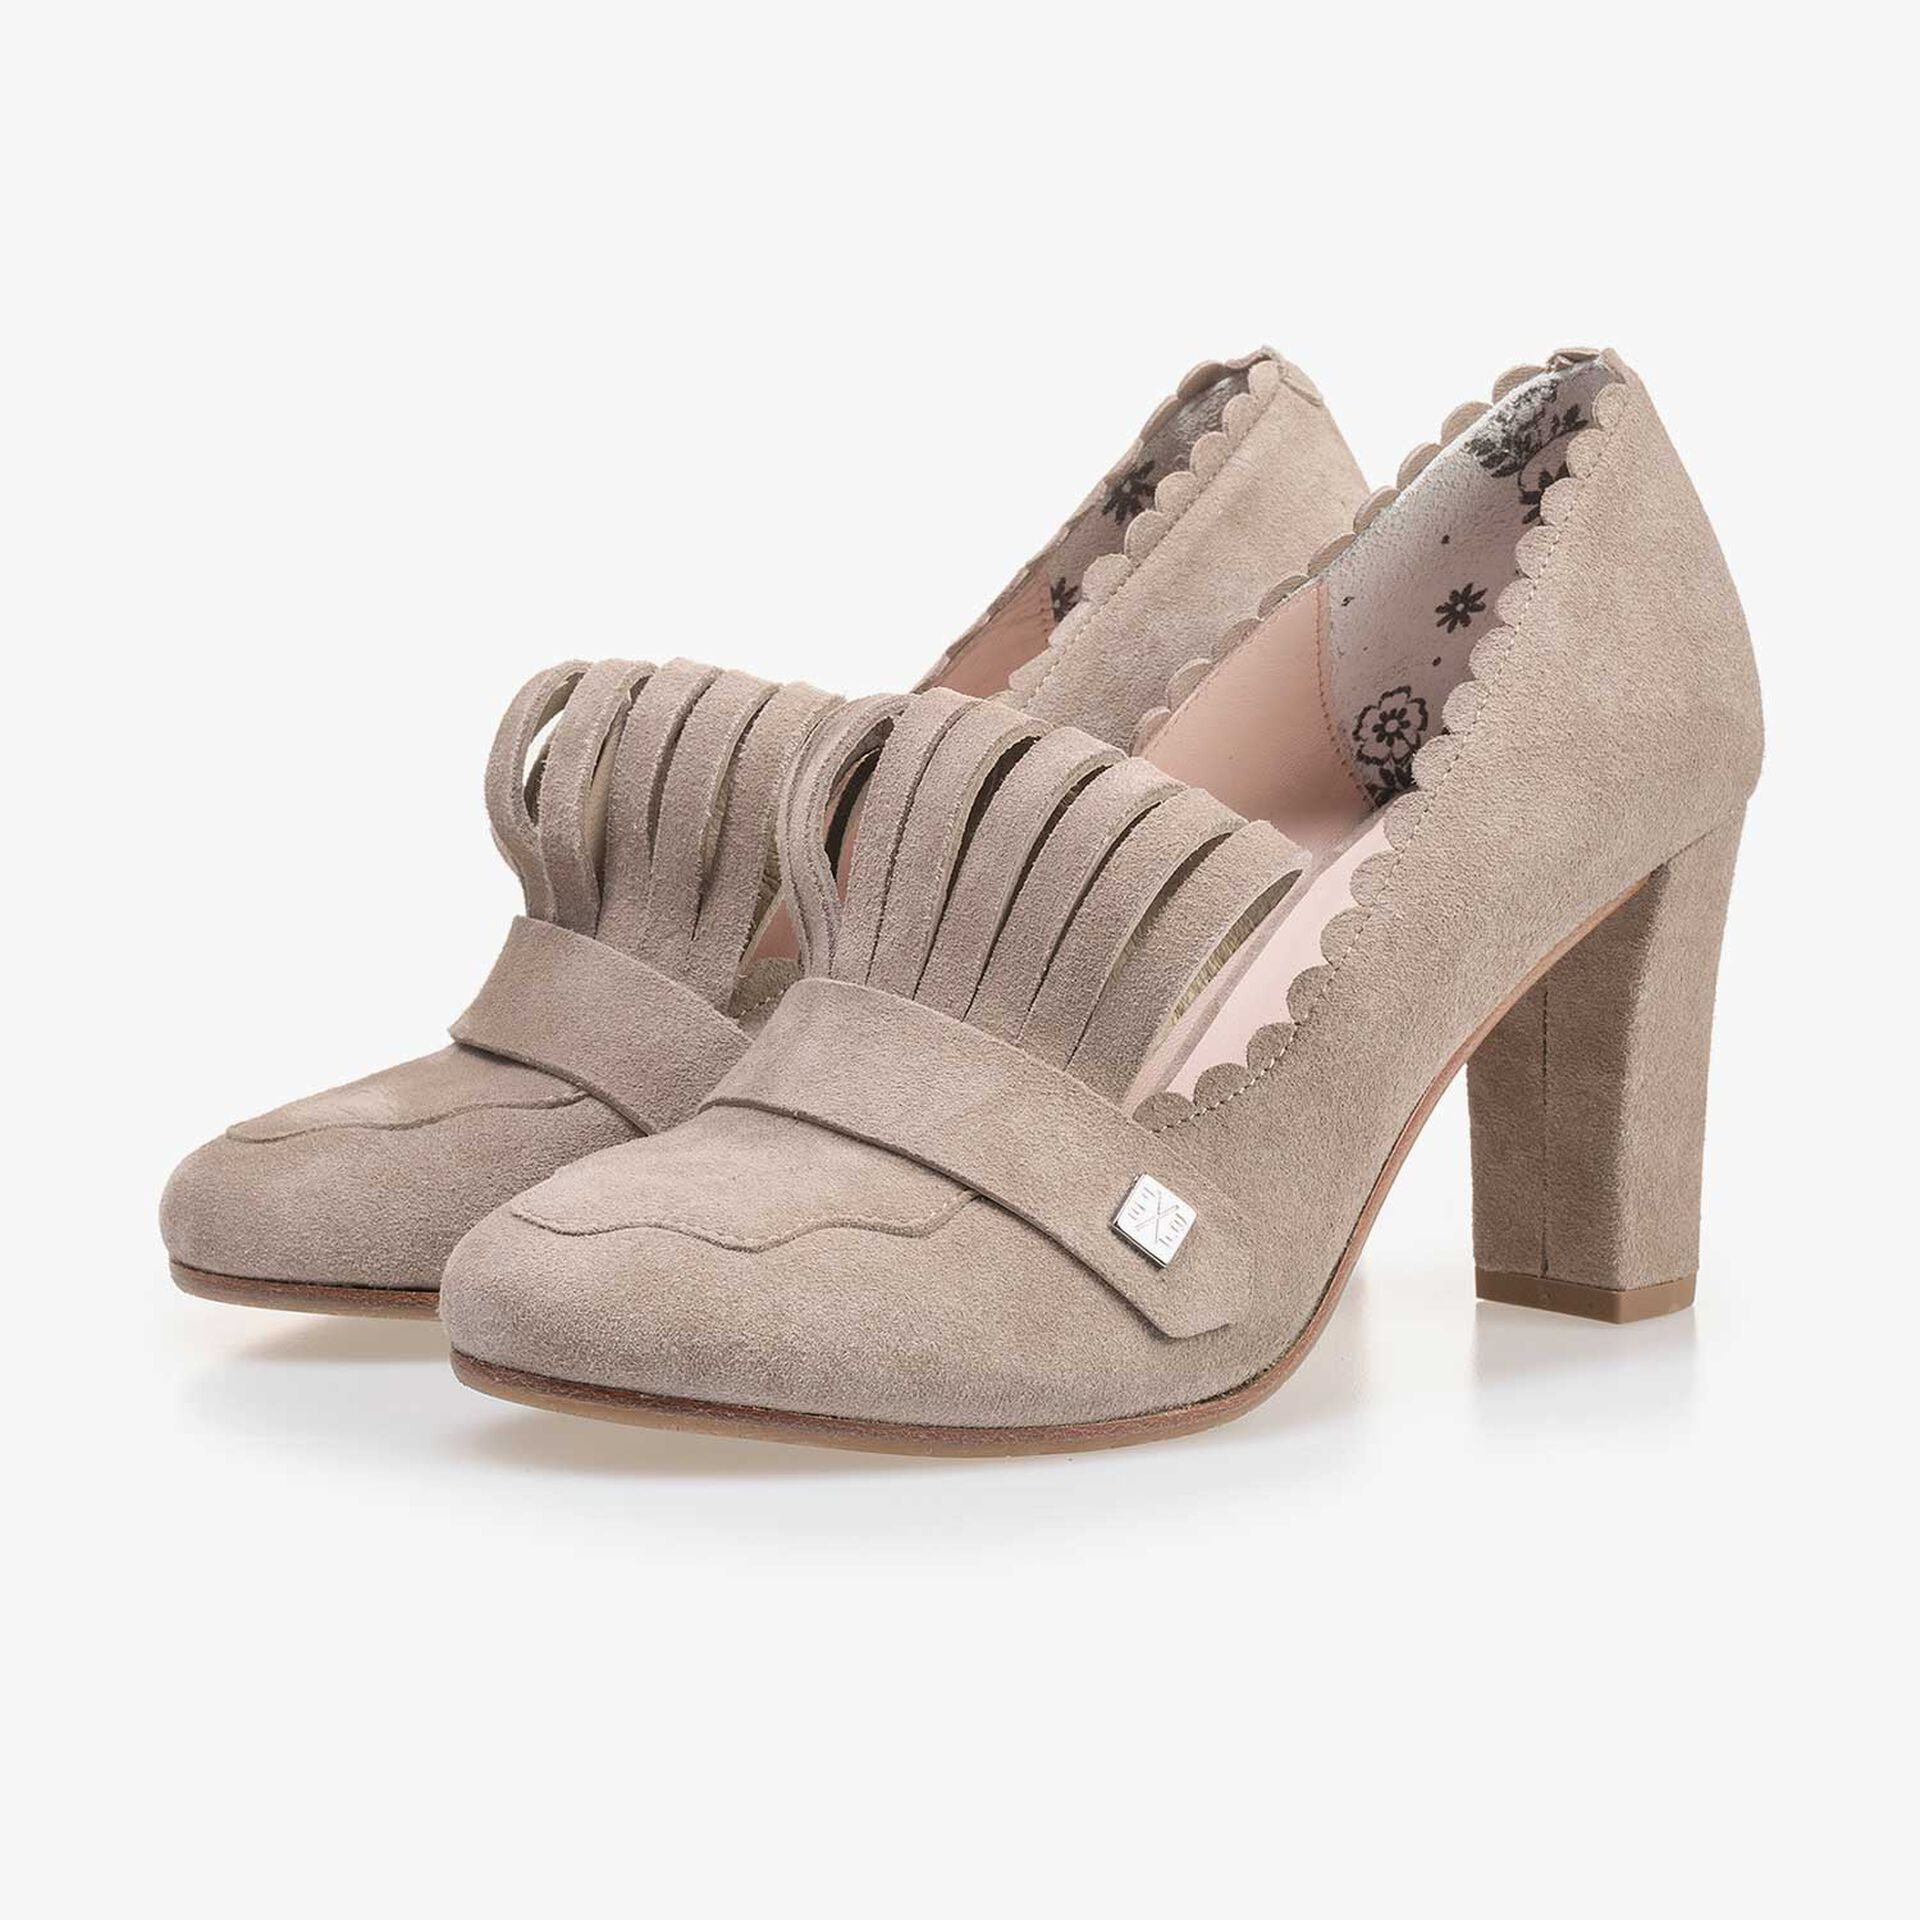 Taupe-coloured calf's suede leather pumps